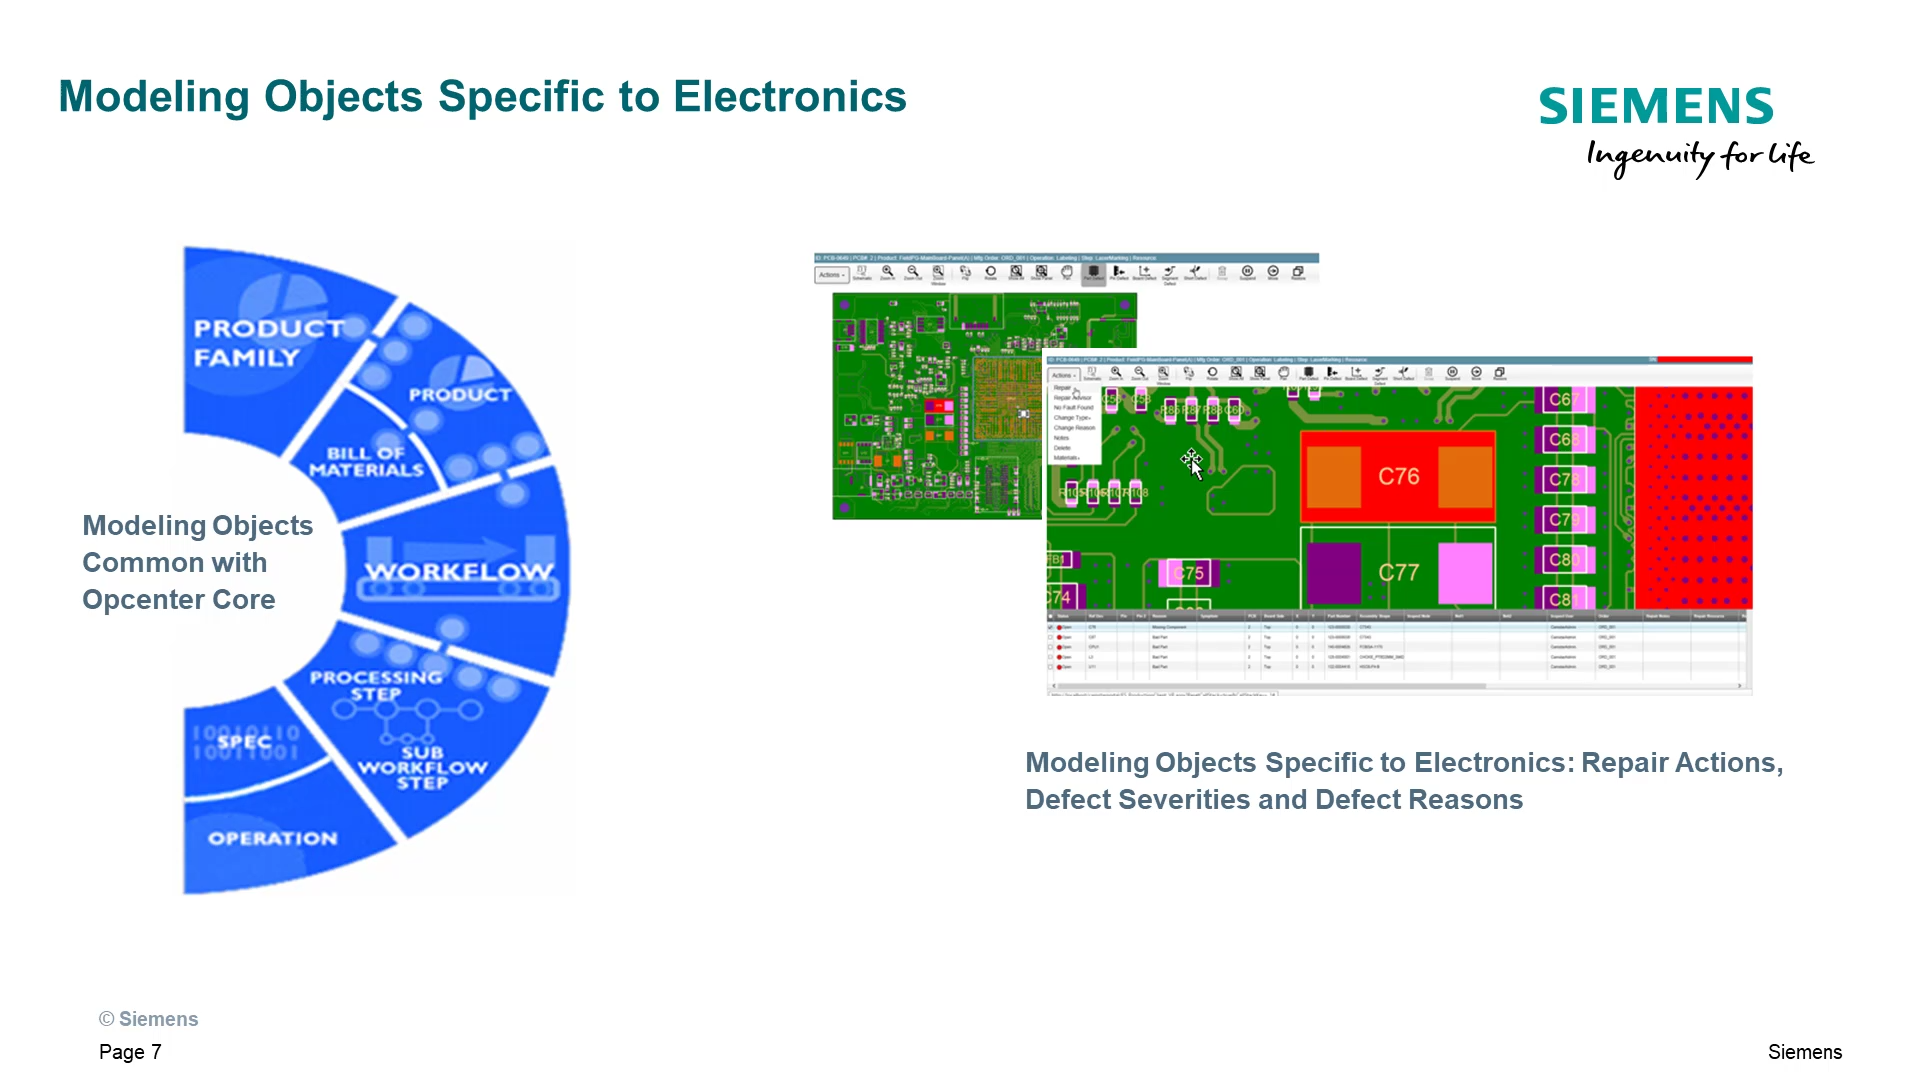 Modeling Sequence and Objects Specific to Electronics cover image